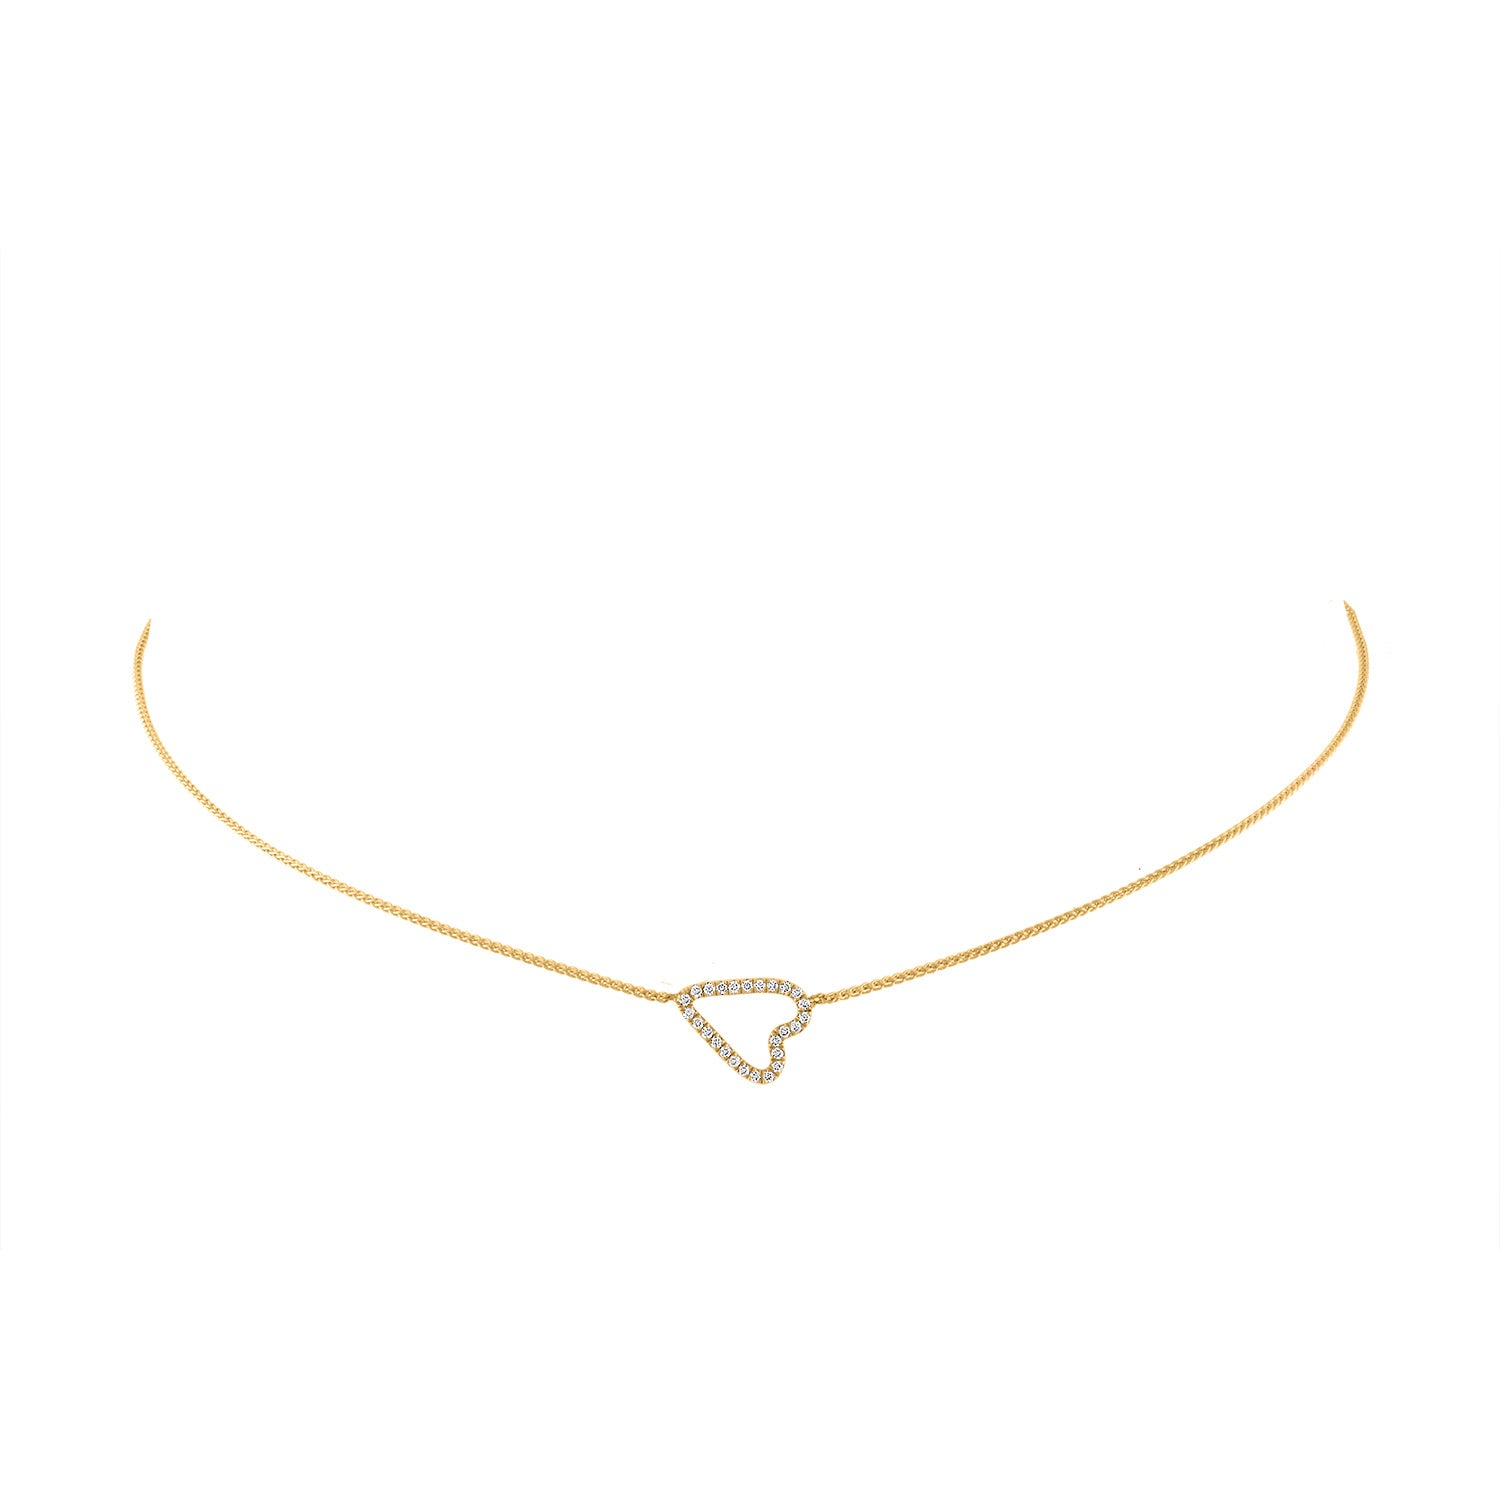 jewellery hammered necklaces handmade reija necklace heart ammered hand jewelry shop eden gold